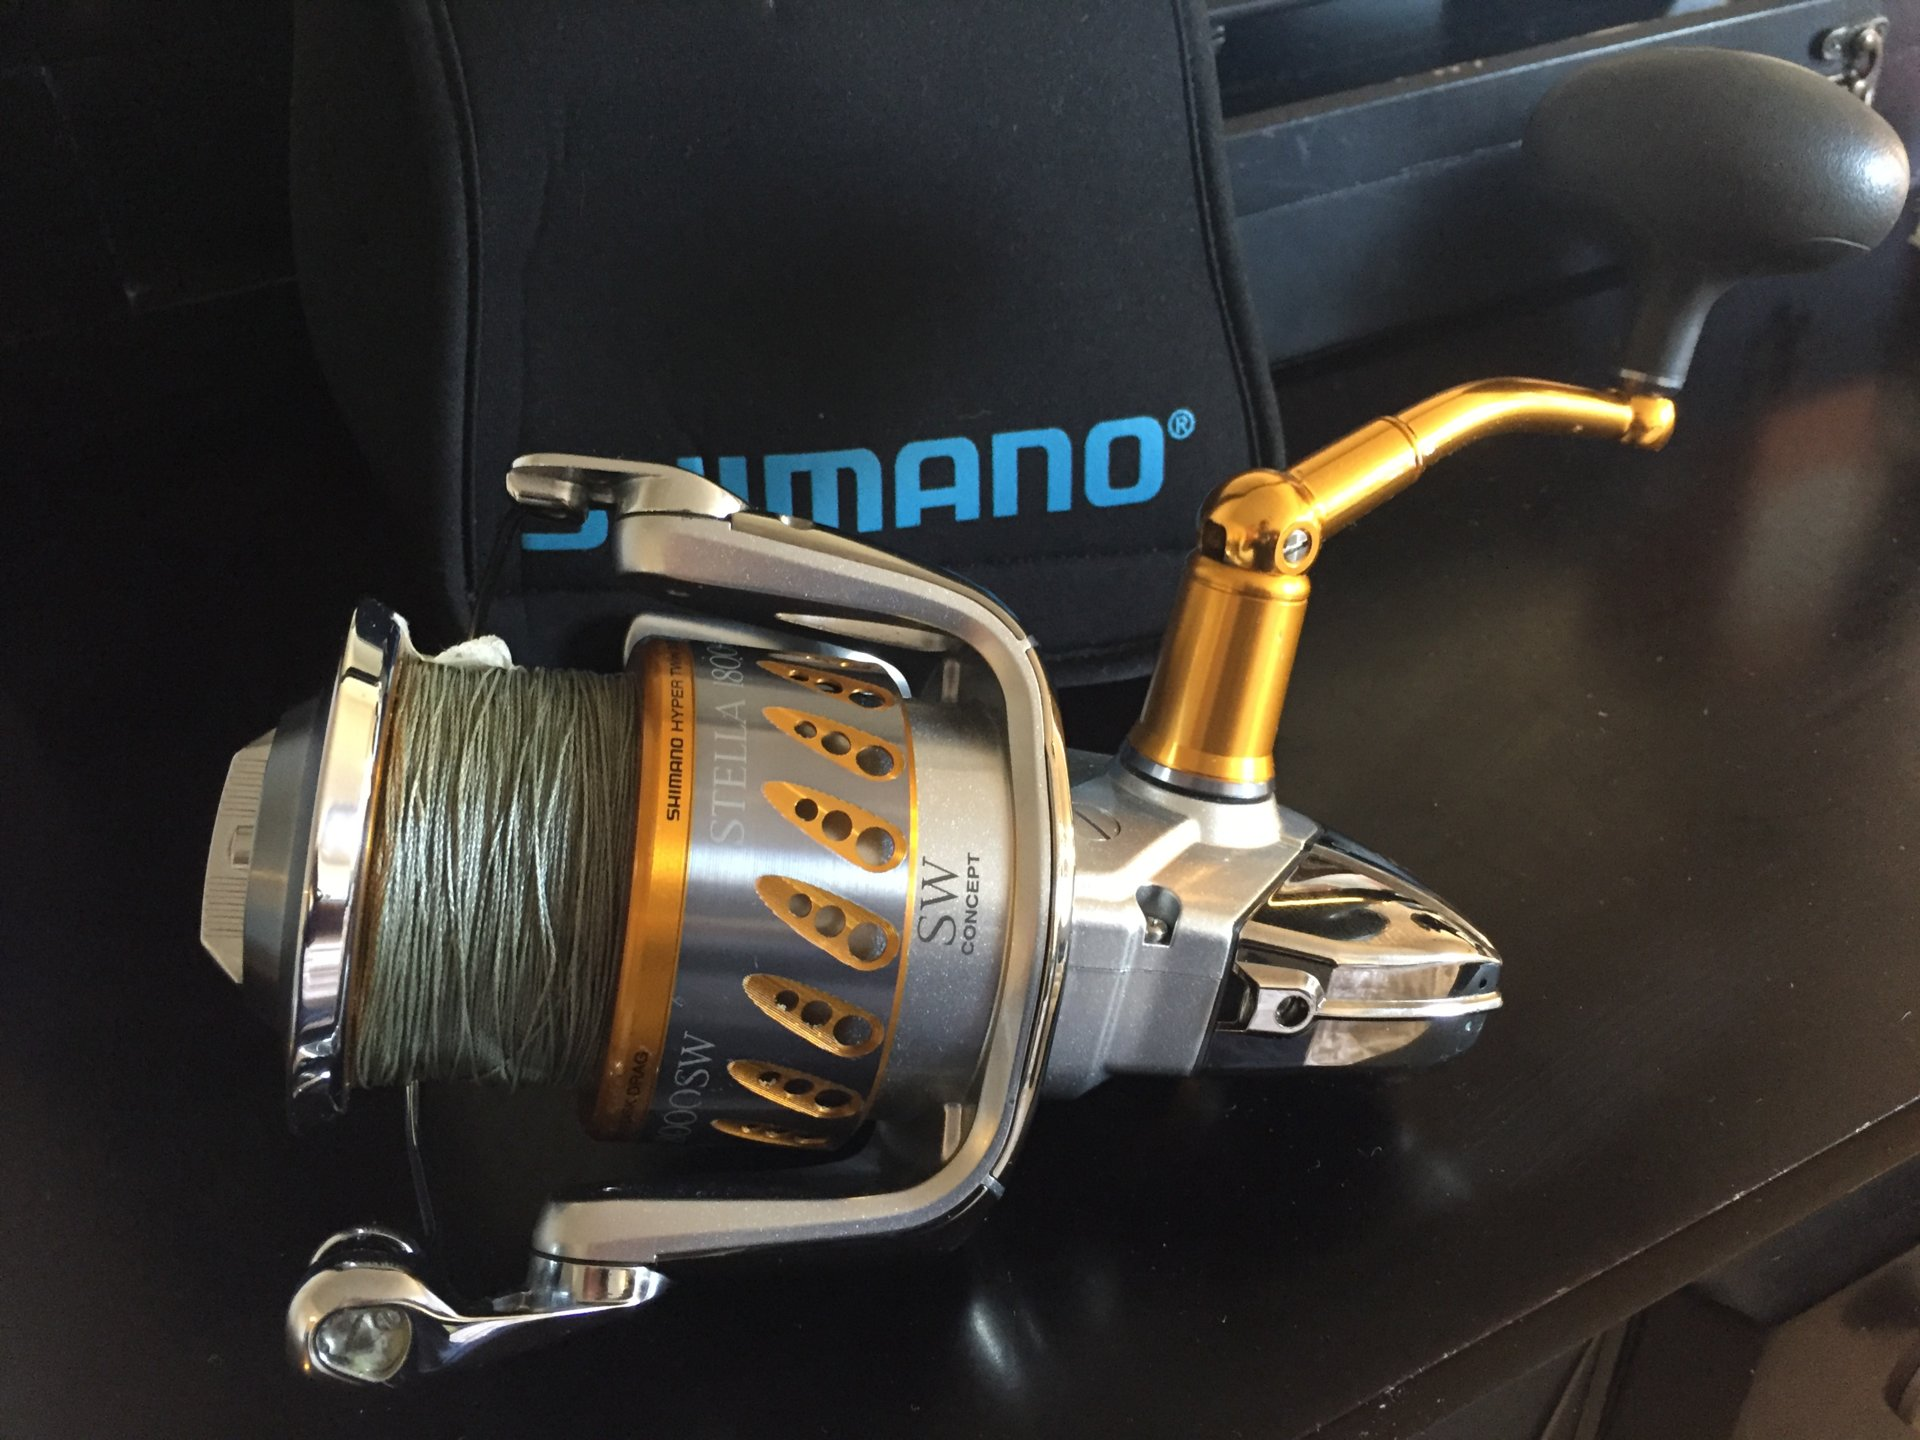 For Sale - Shimano stella 18000 SW 2008 price dropped